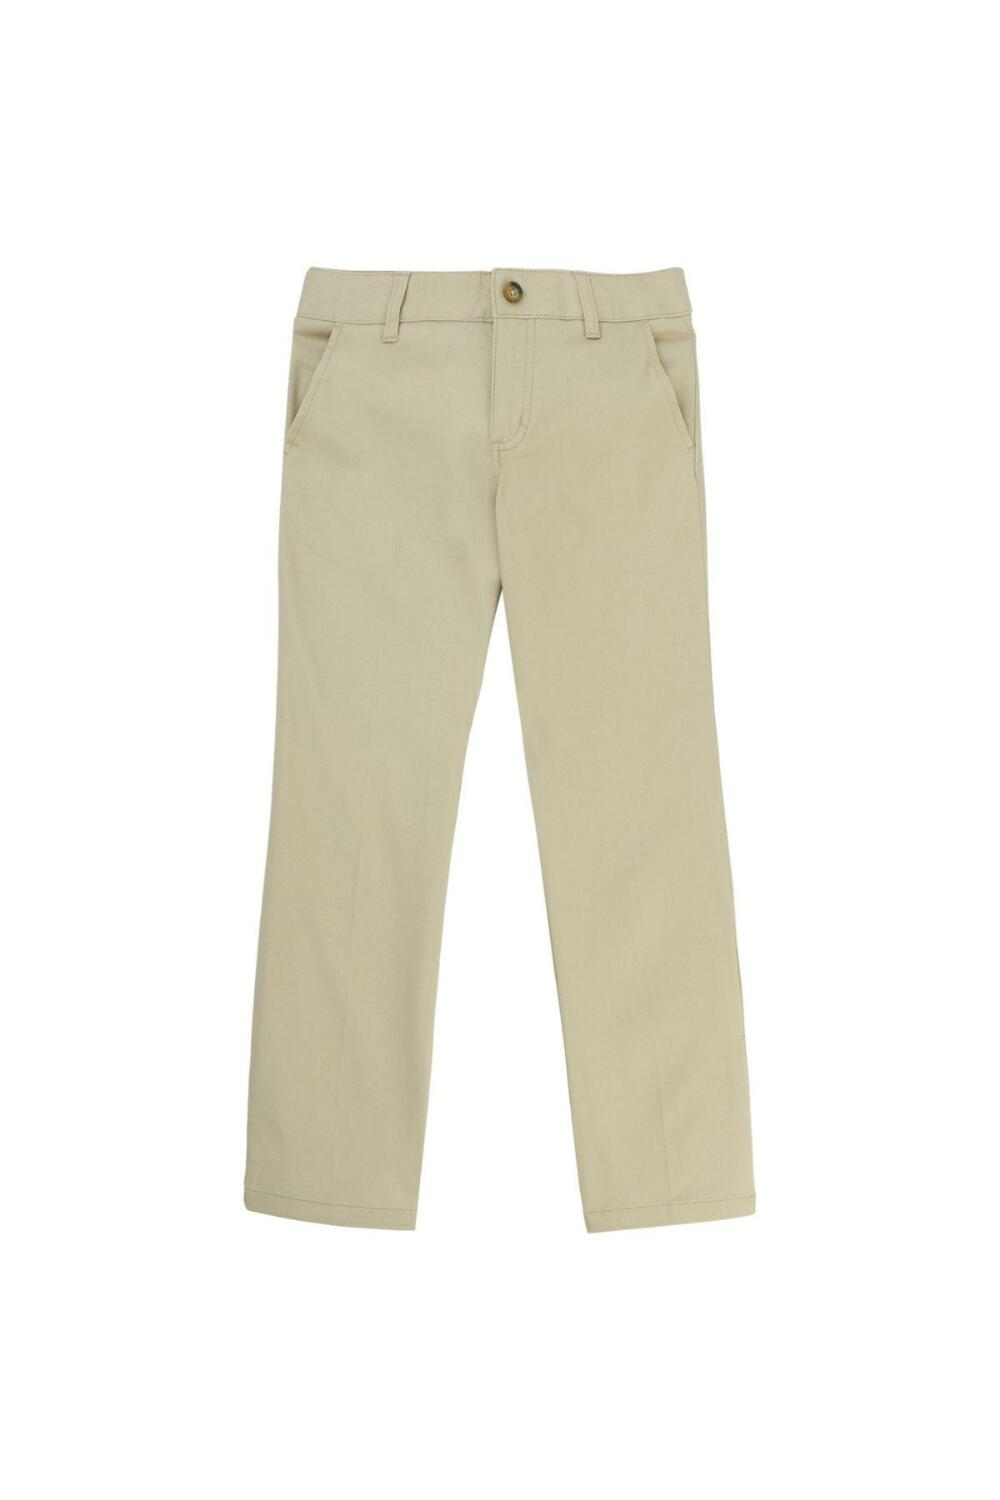 French Toast Girl's Straight Leg Twill Pant (Pant Color: Khaki, Pant Size: Size 4)